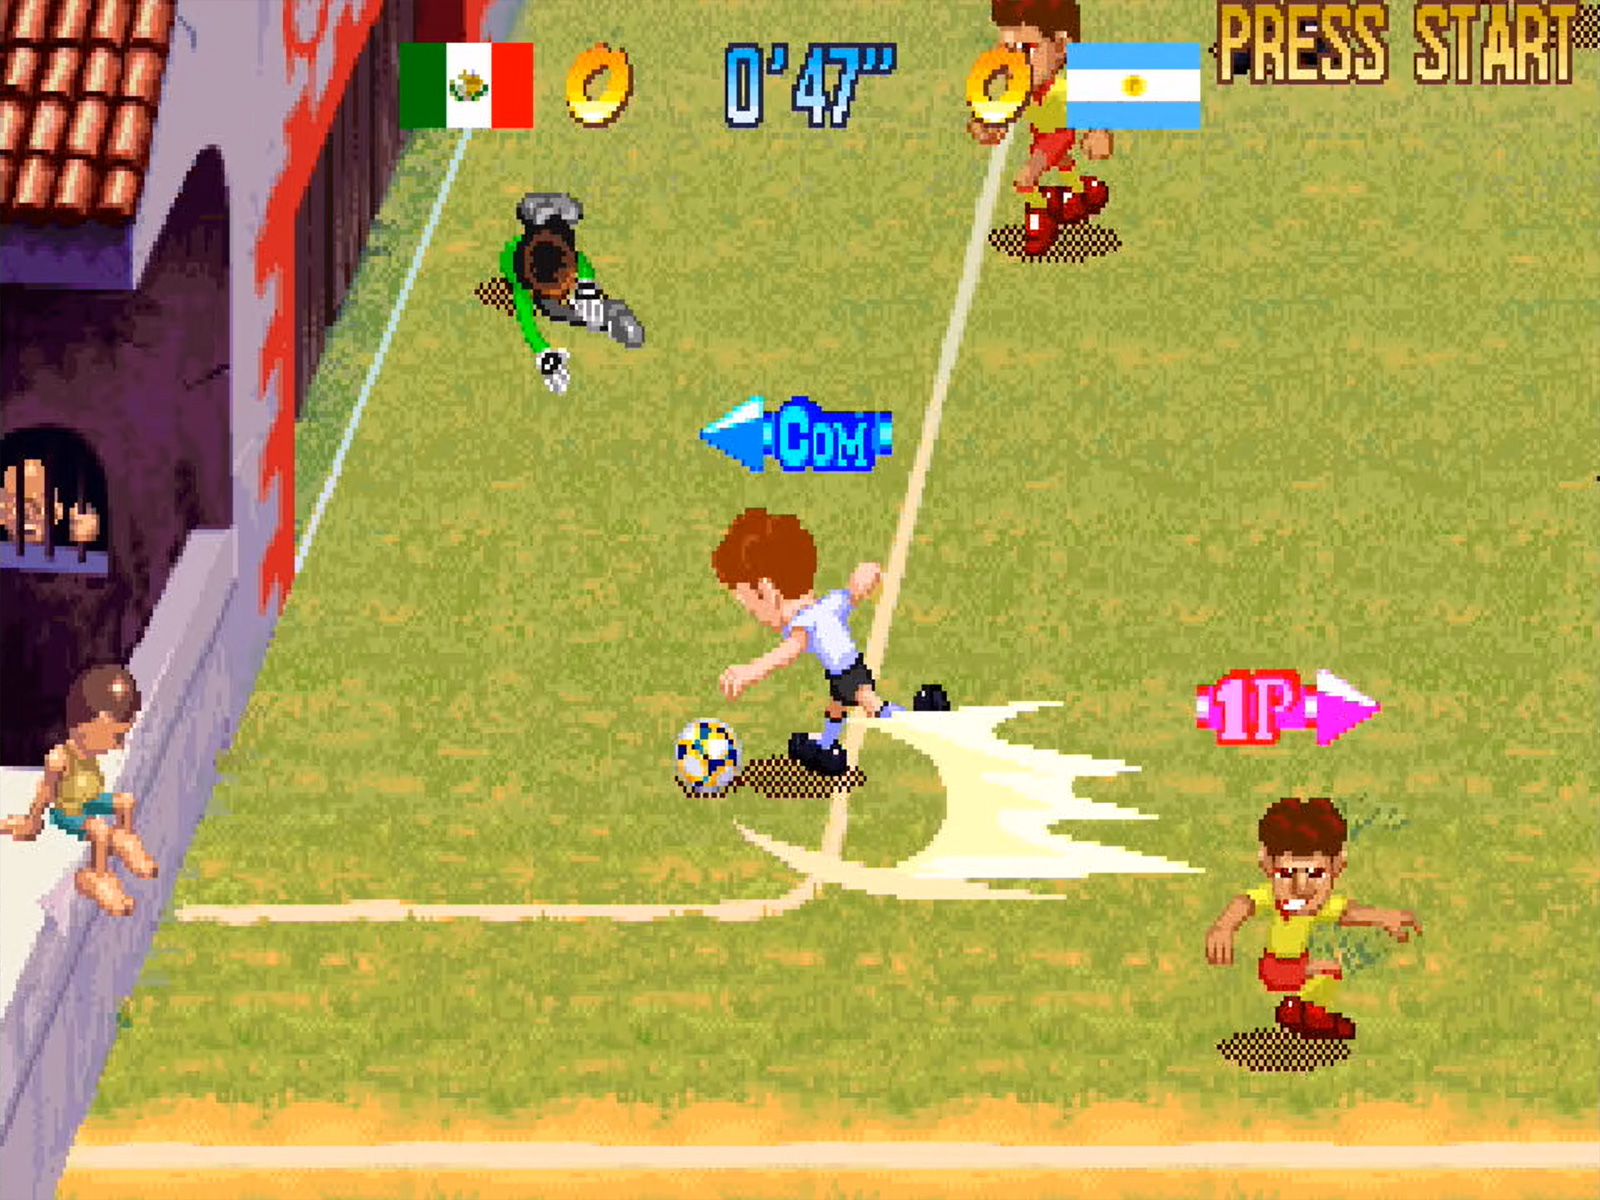 Capcom Sports Club (Fußball)